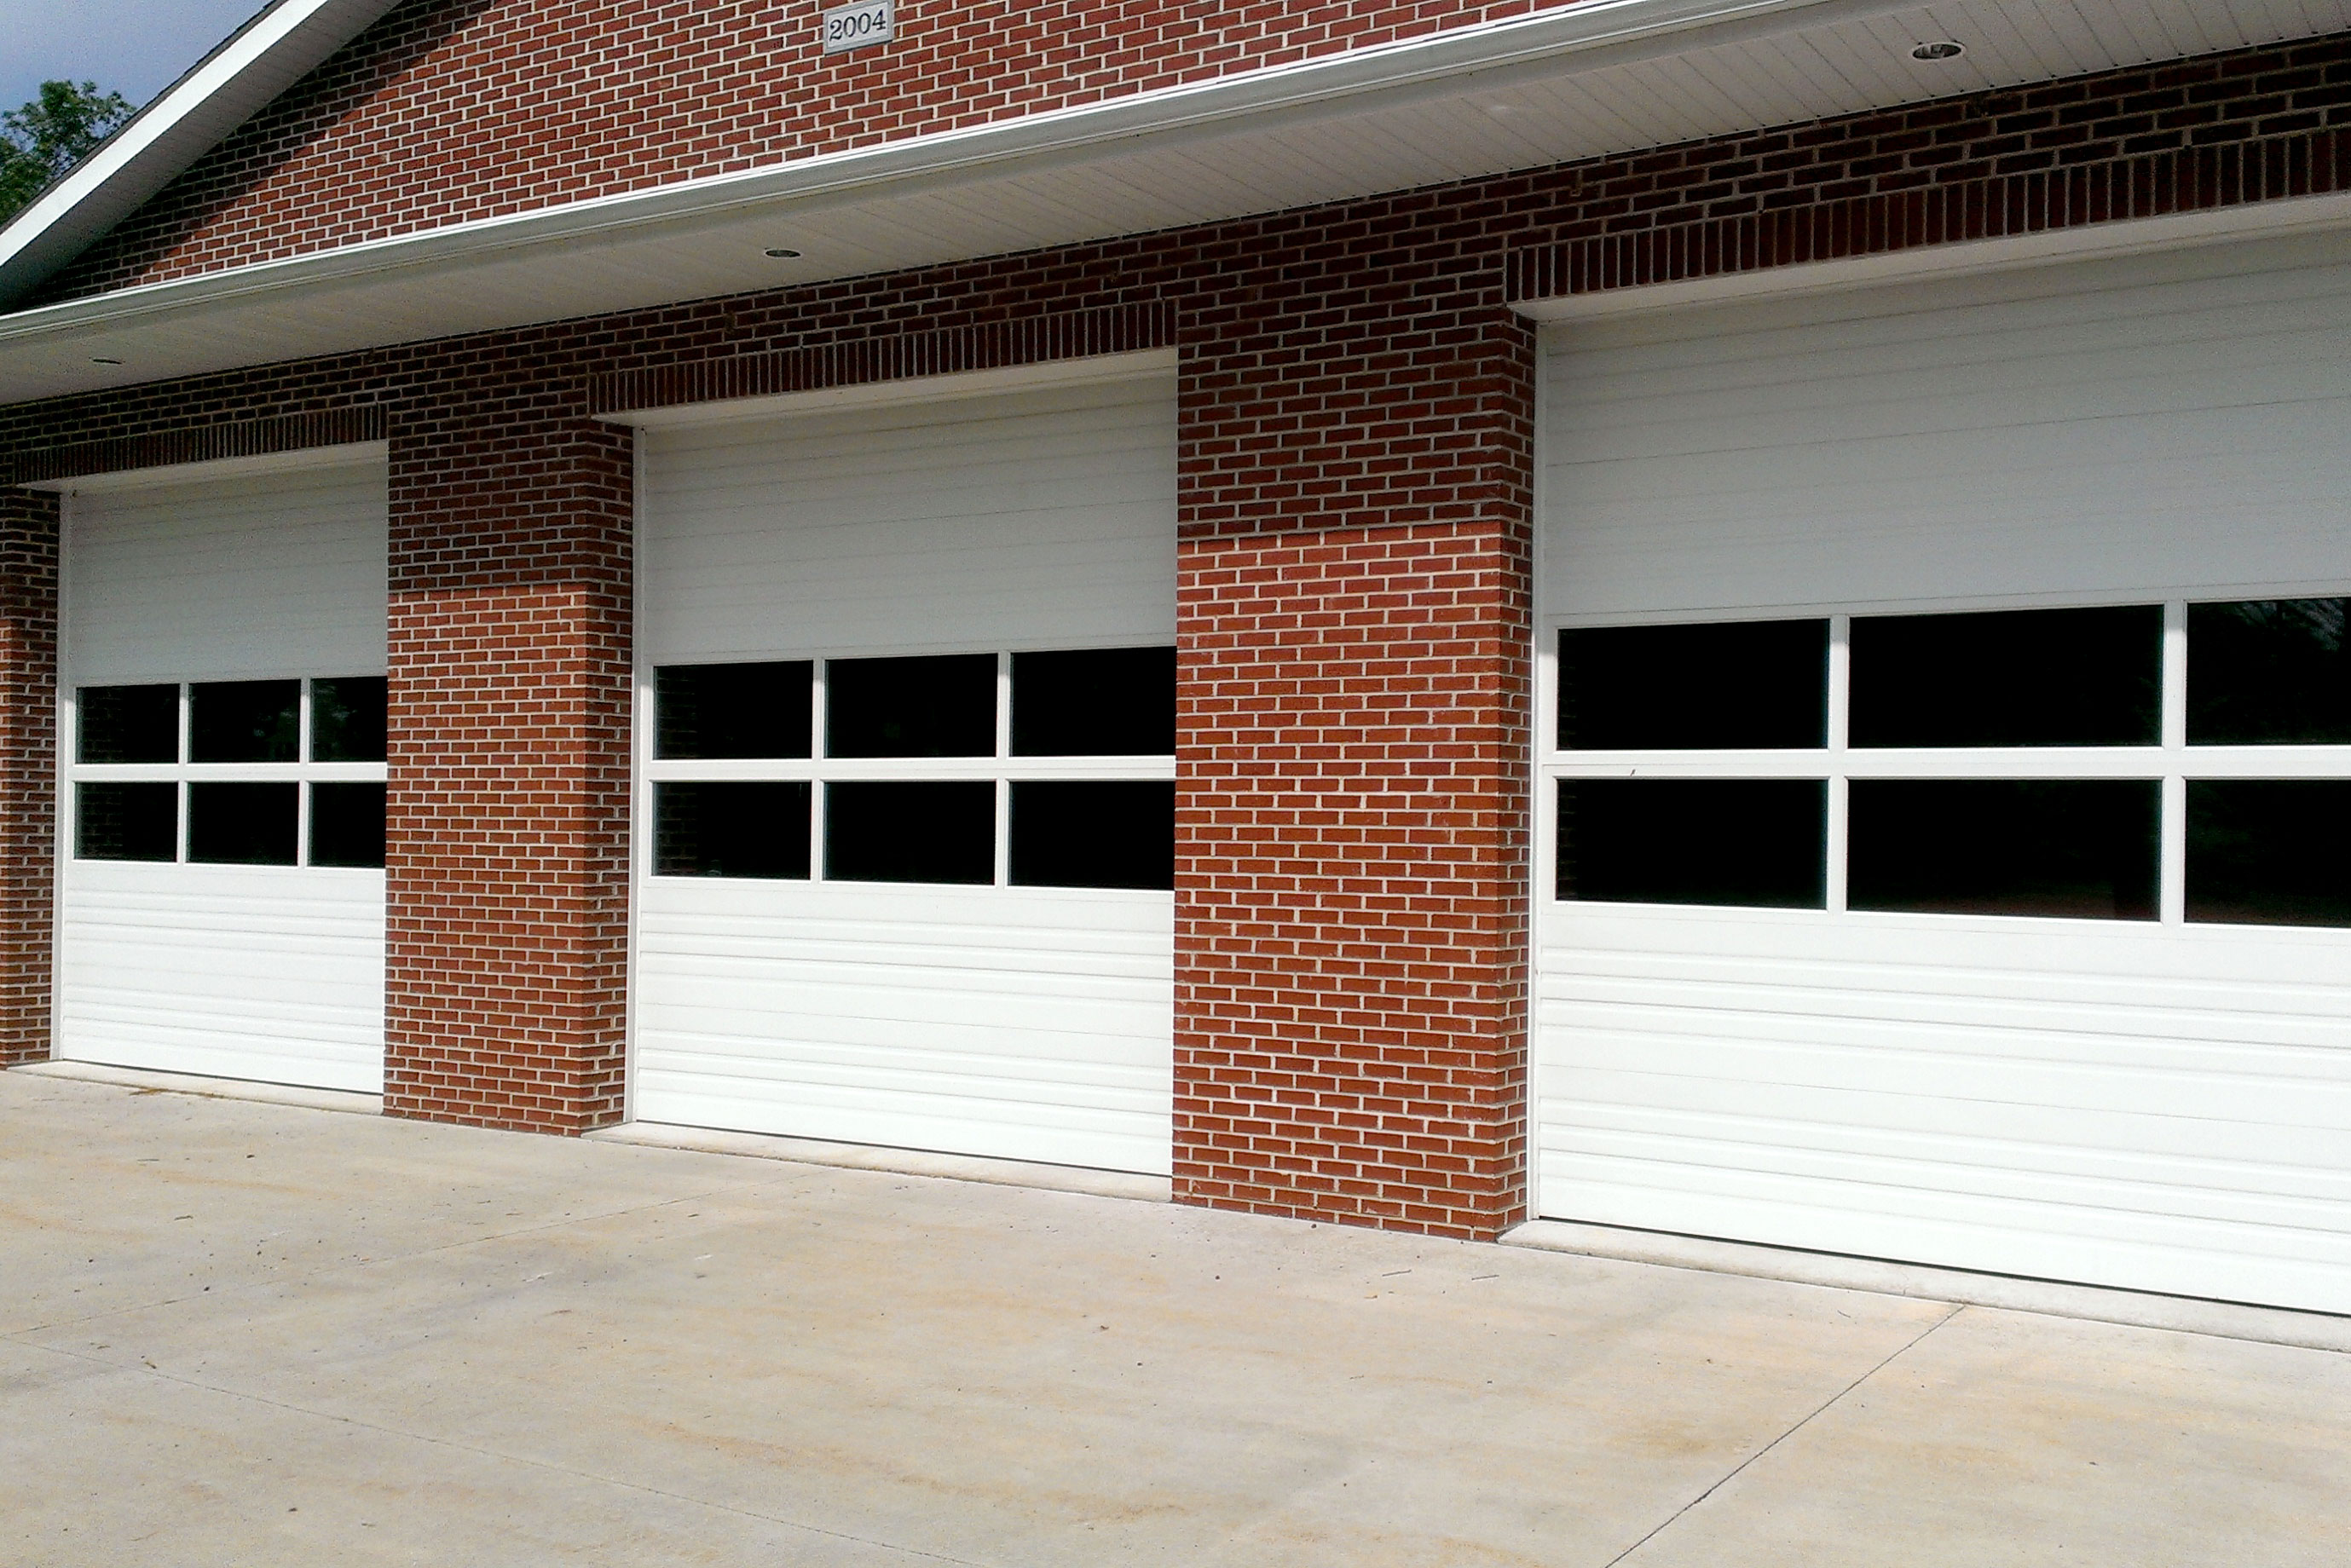 Commercial Garage Door Gallery The Jaydor Company